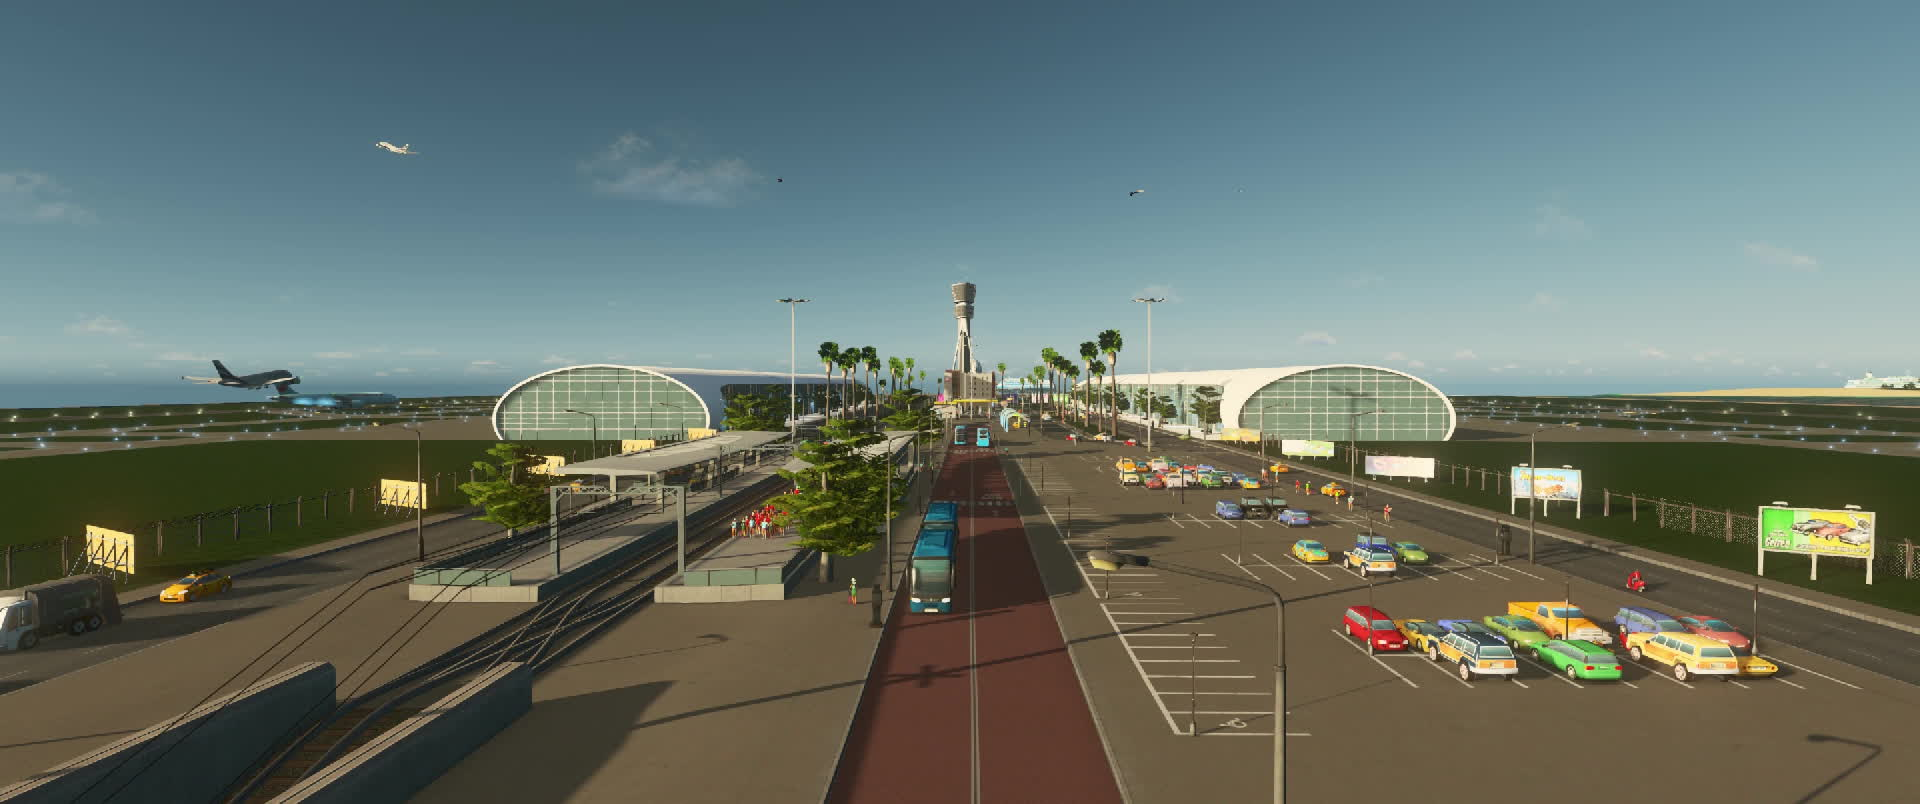 citiesskylines, Howie Islands - Airport Timelapse 1 GIFs